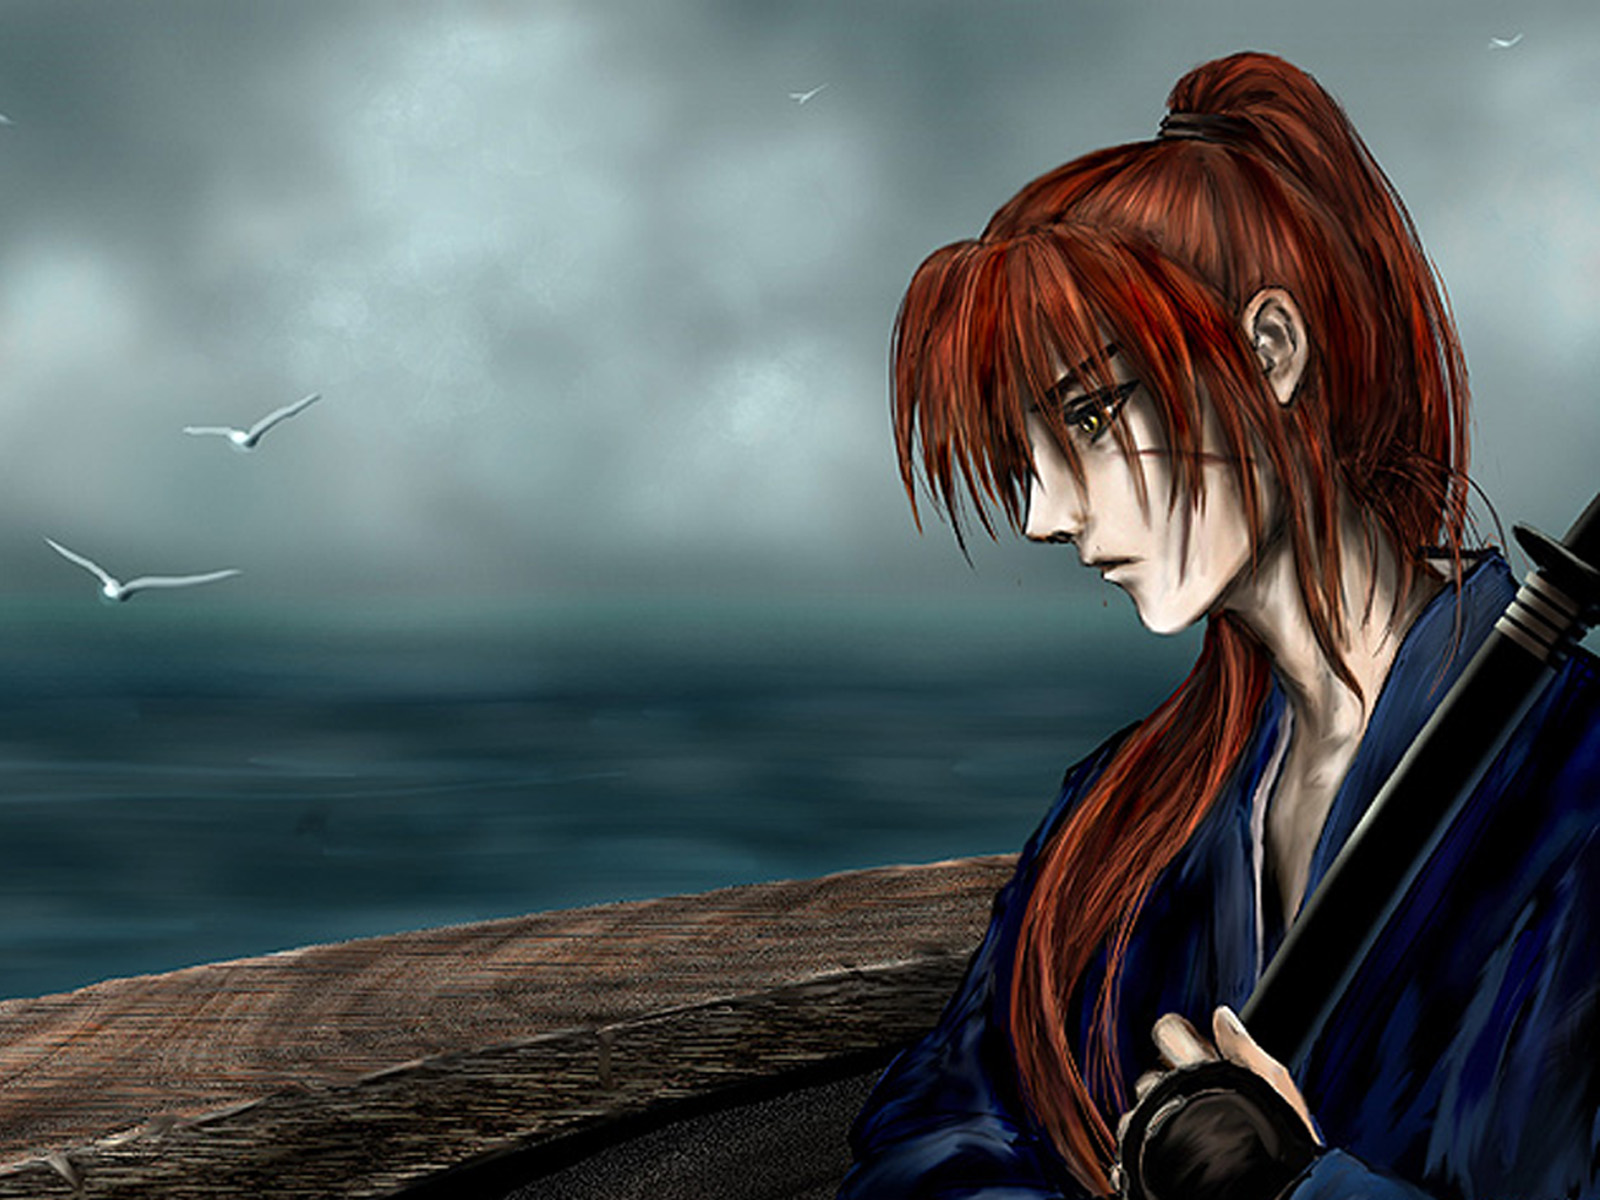 Himura kenshin wallpapers high quality download free himura kenshin high quality wallpapers voltagebd Gallery